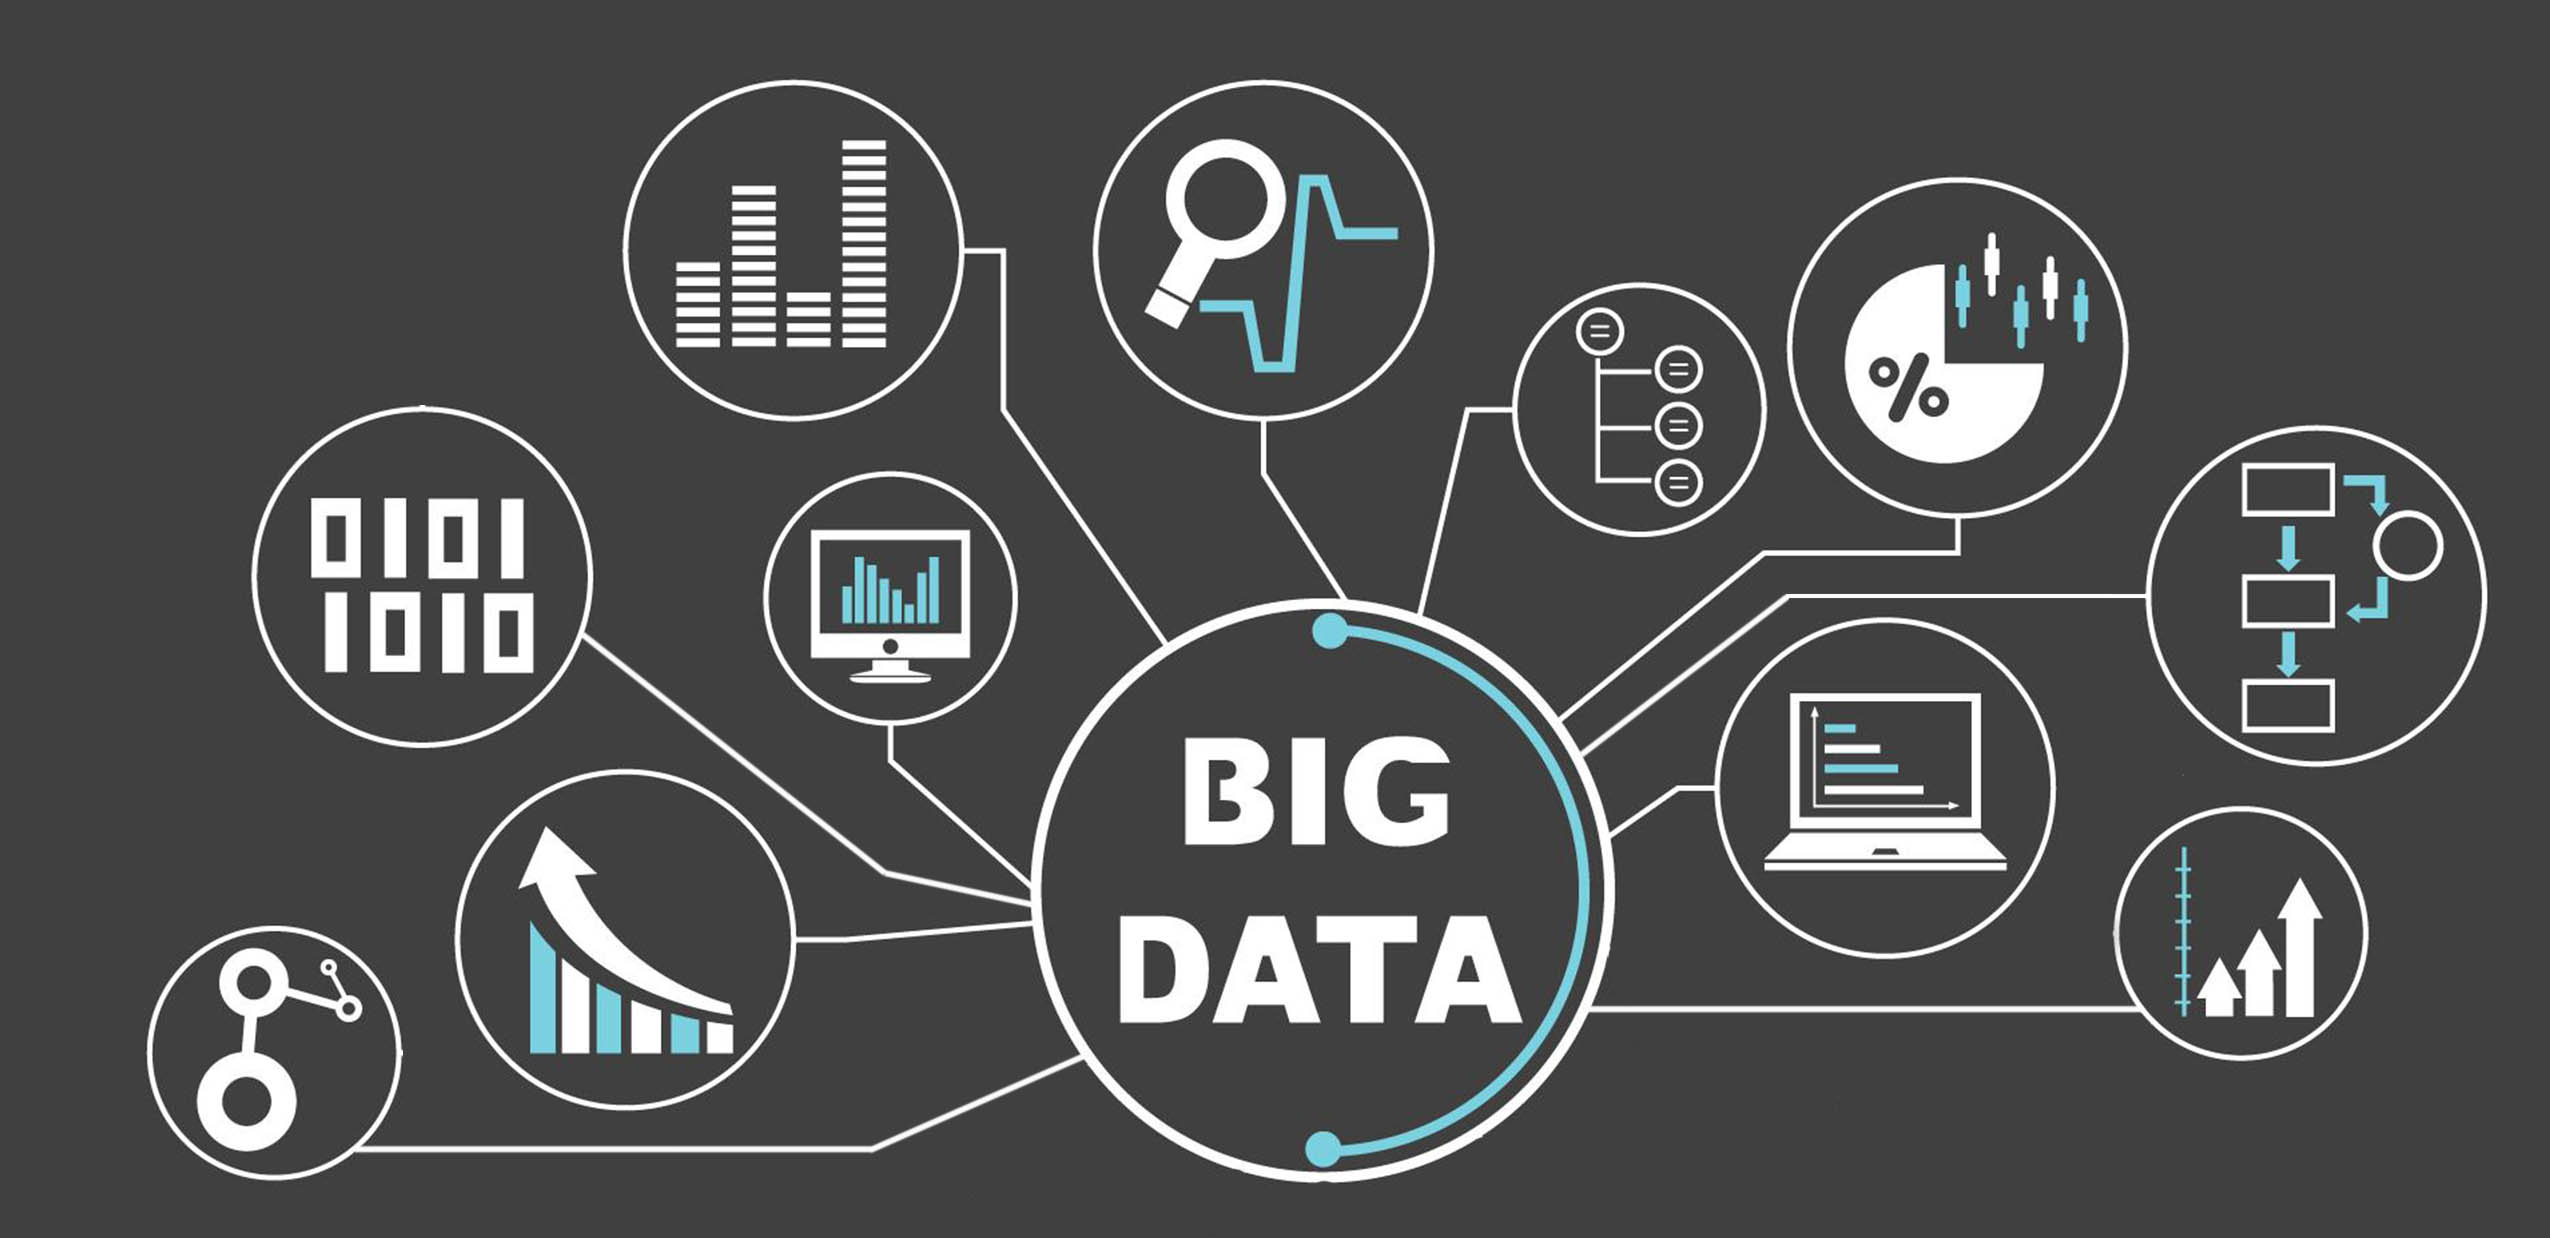 Big Data is the name of the game.